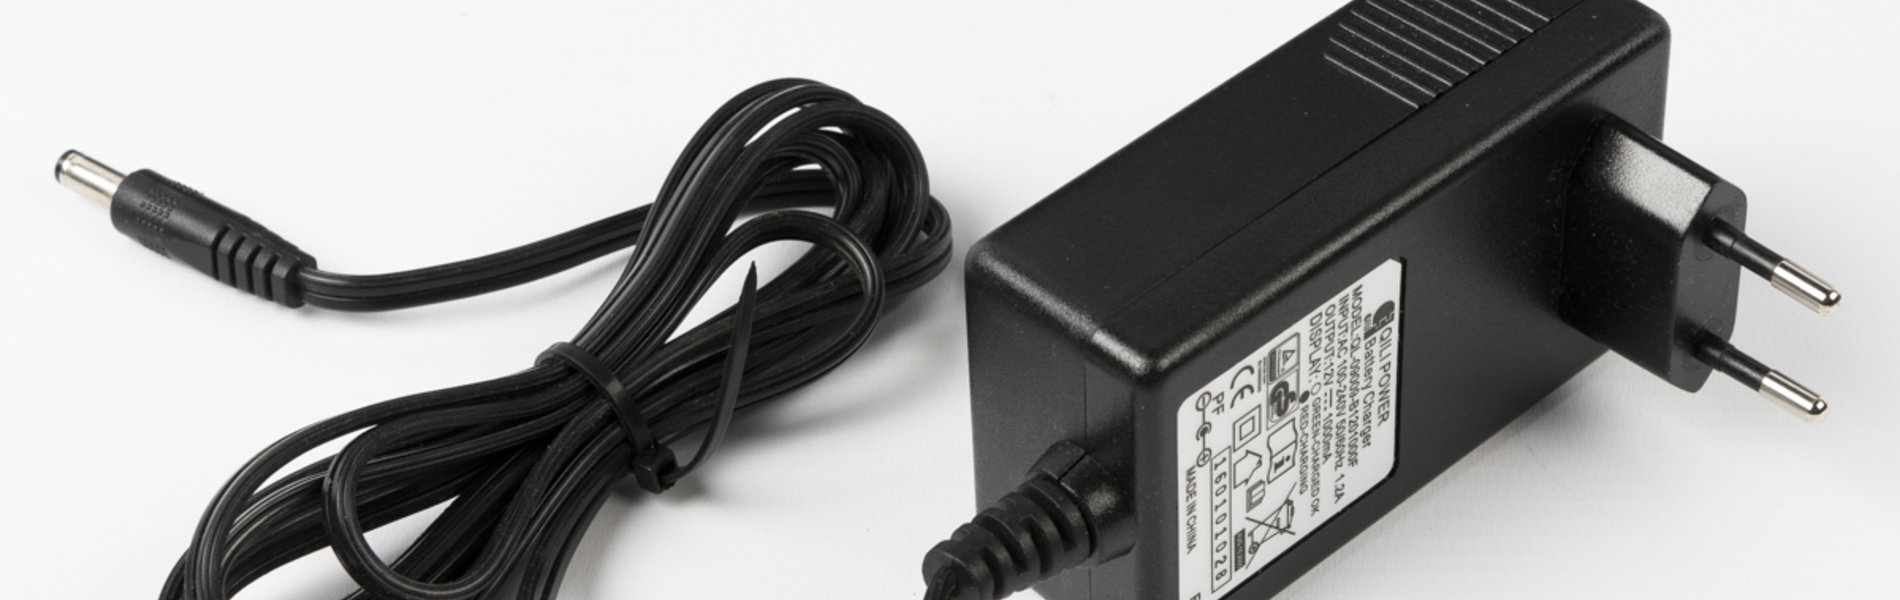 PC E90 - CHARGER PORT W/WIRES